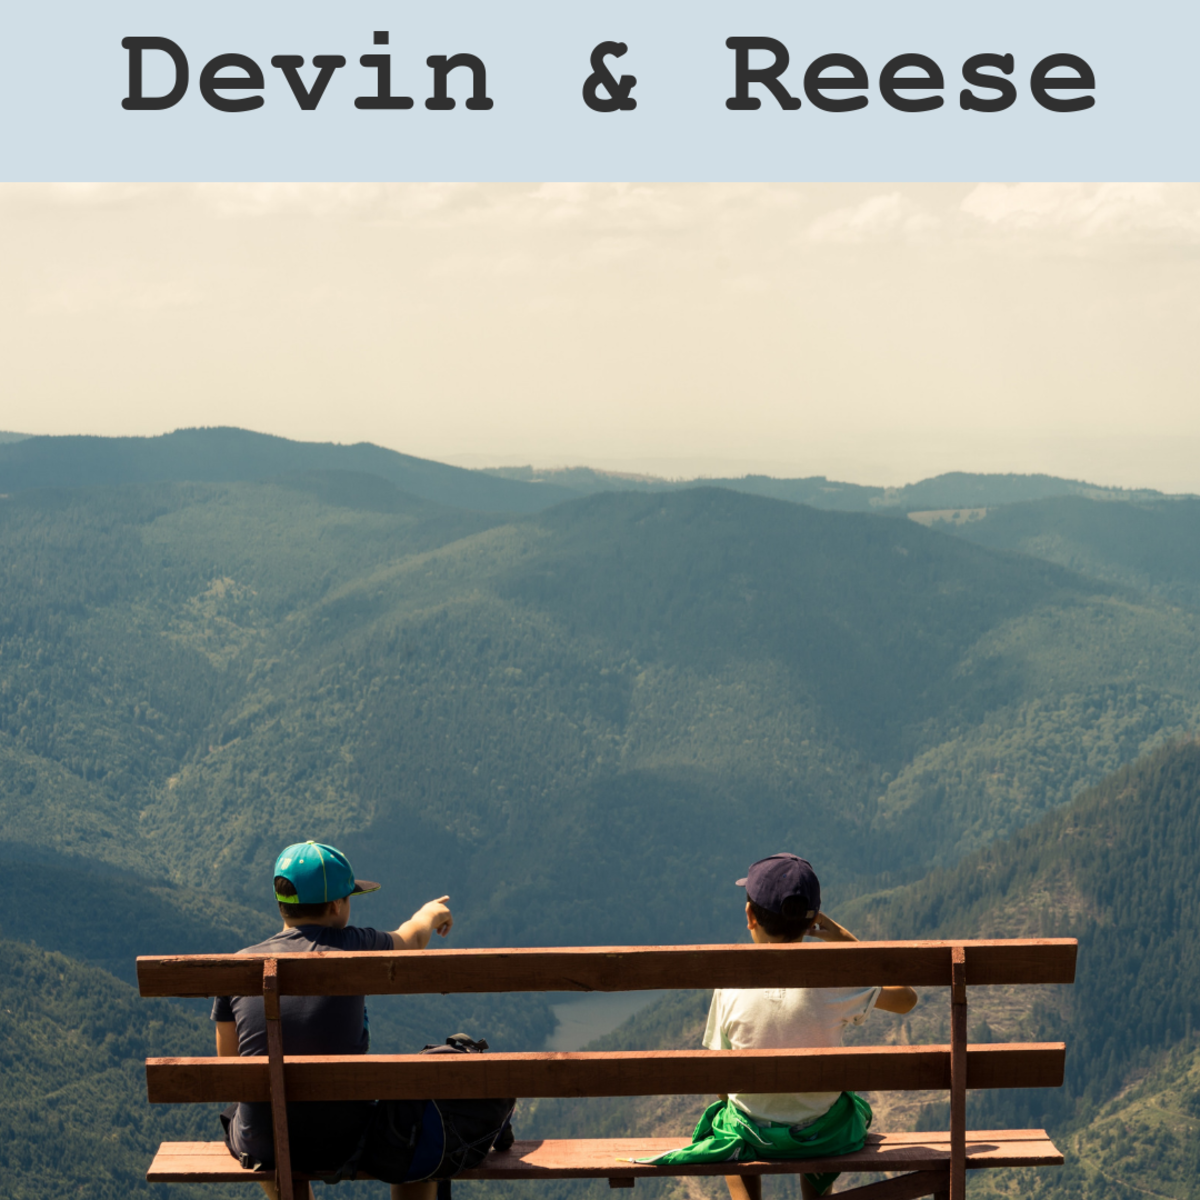 Devin and Reese